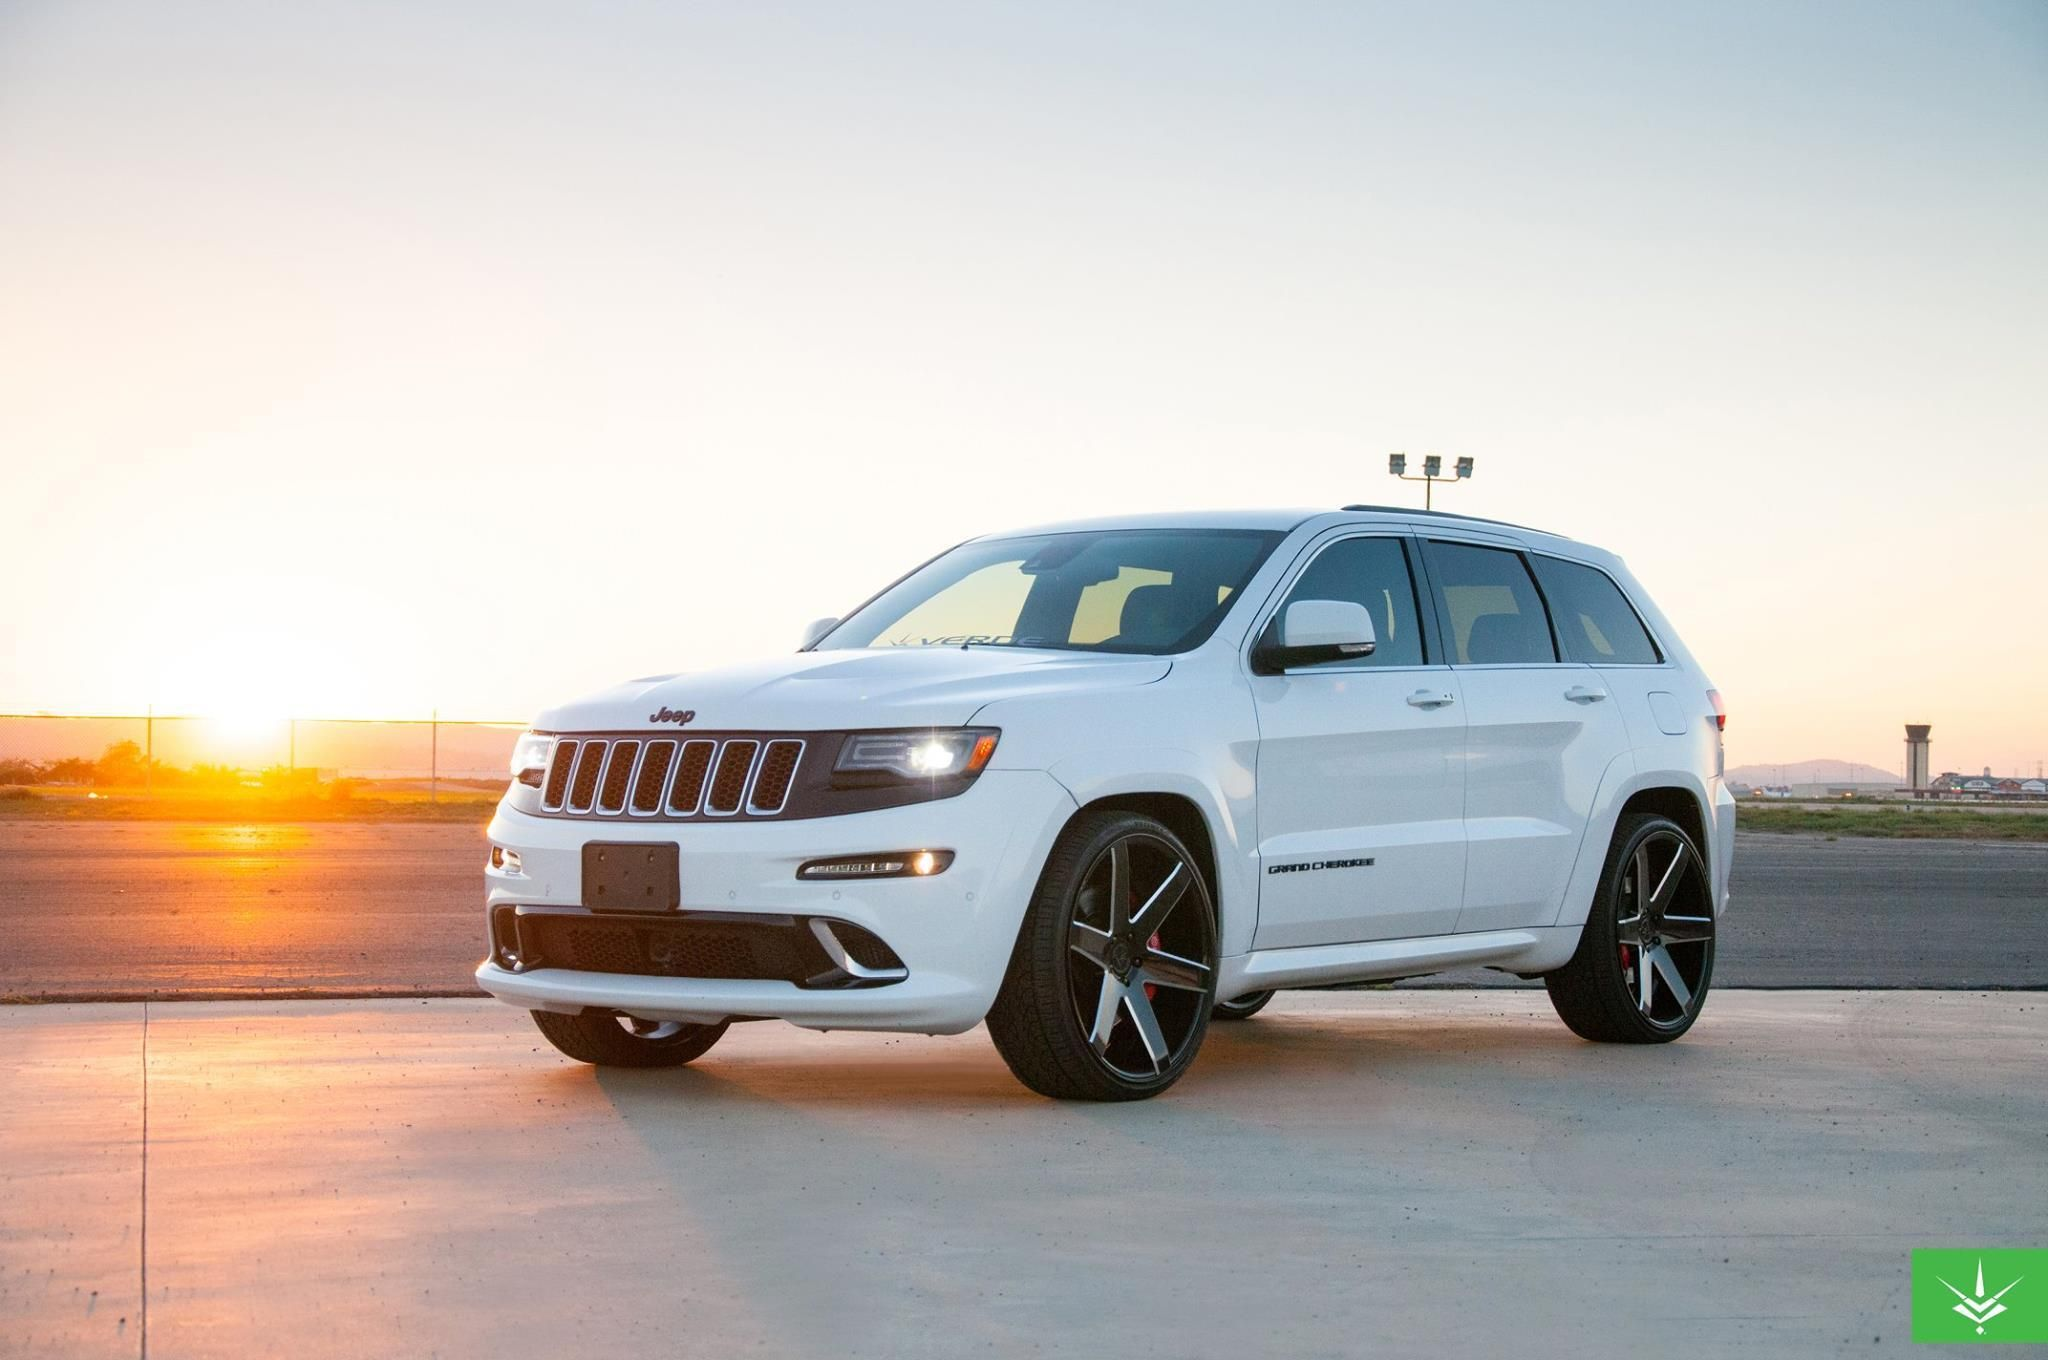 2015 jeep grand cherokee srt8 by verde custom wheels click to view more photos and mod info. Black Bedroom Furniture Sets. Home Design Ideas